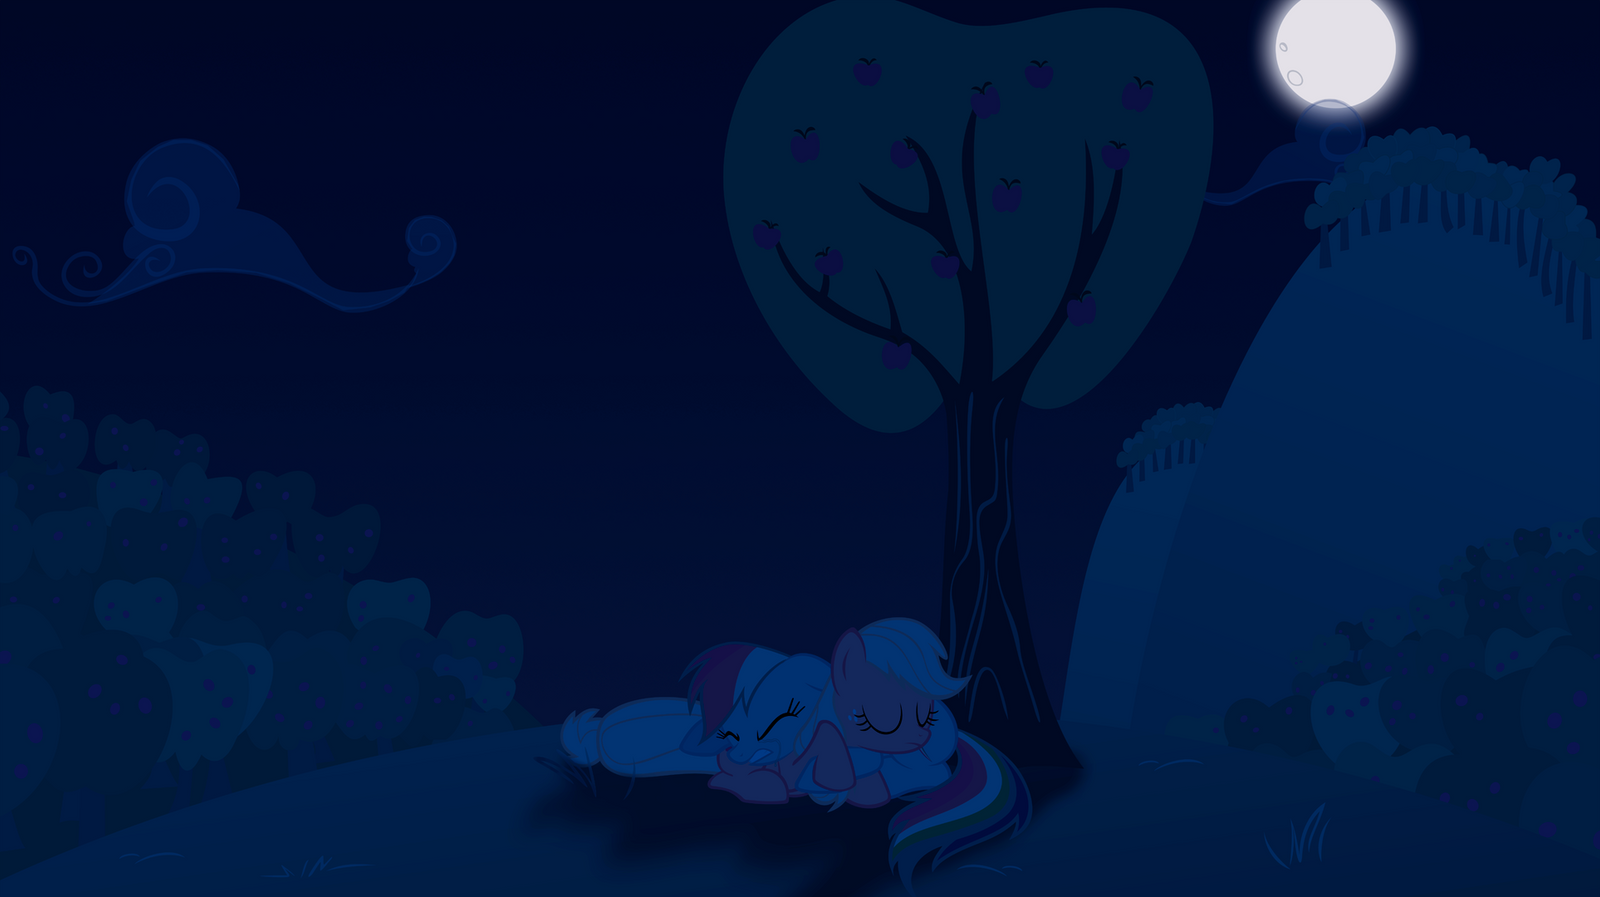 A Solemn Summer Night - Vector w/ Background by krazy3